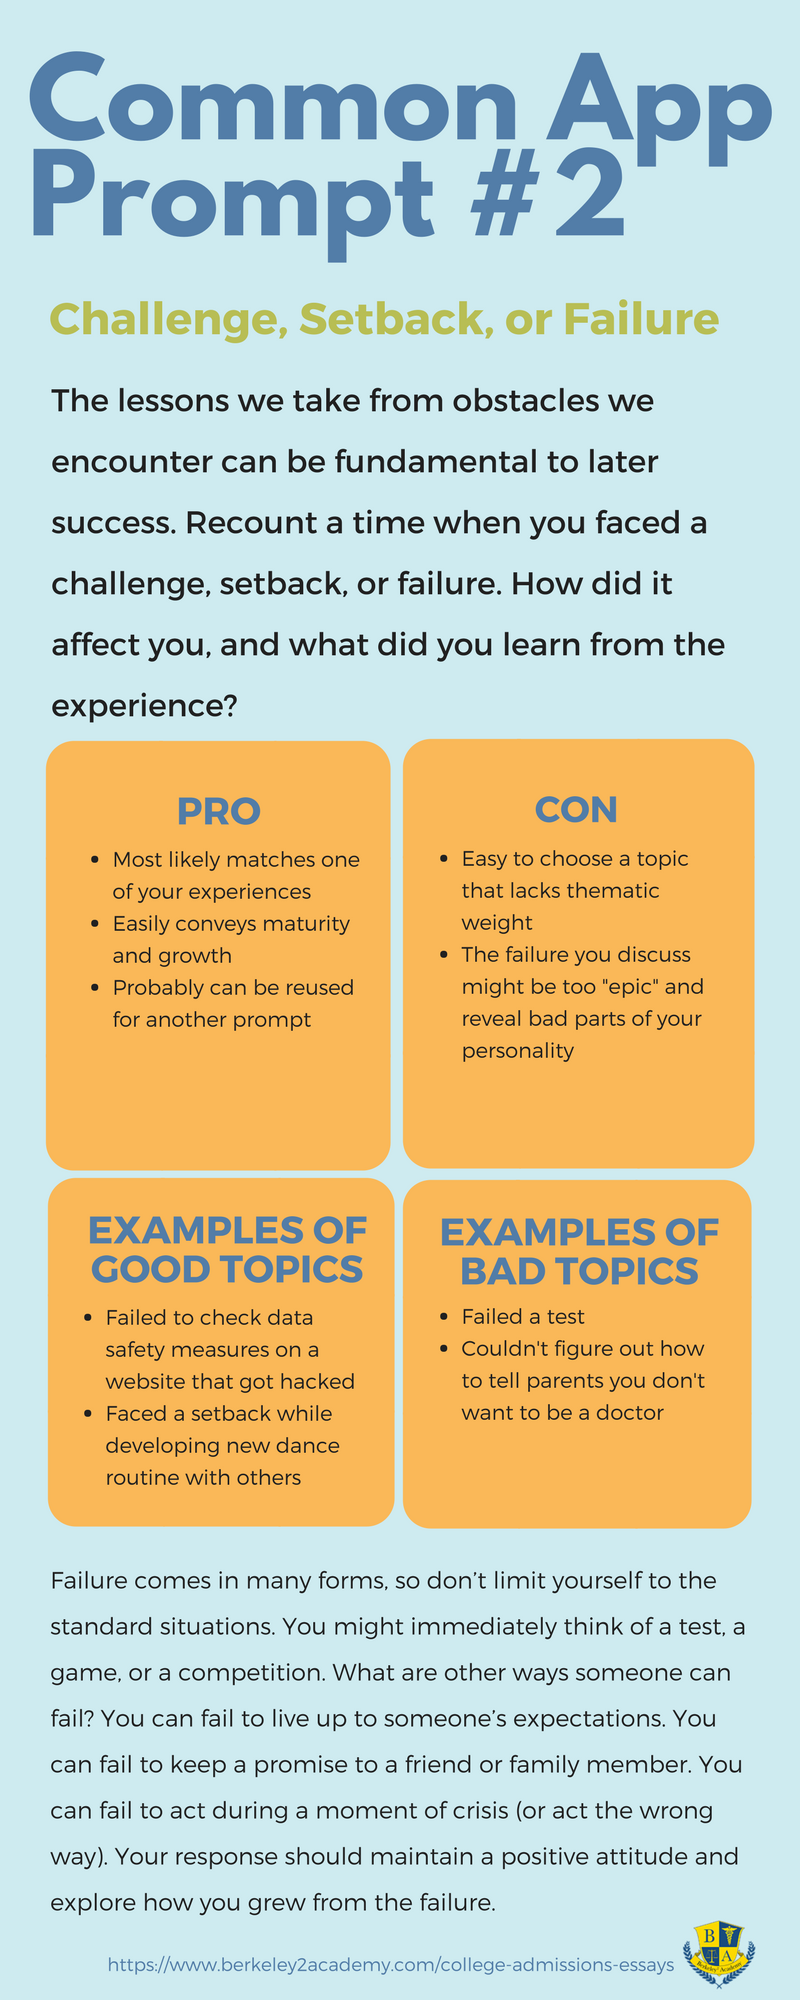 Pros and Cons of Common App Prompt #2